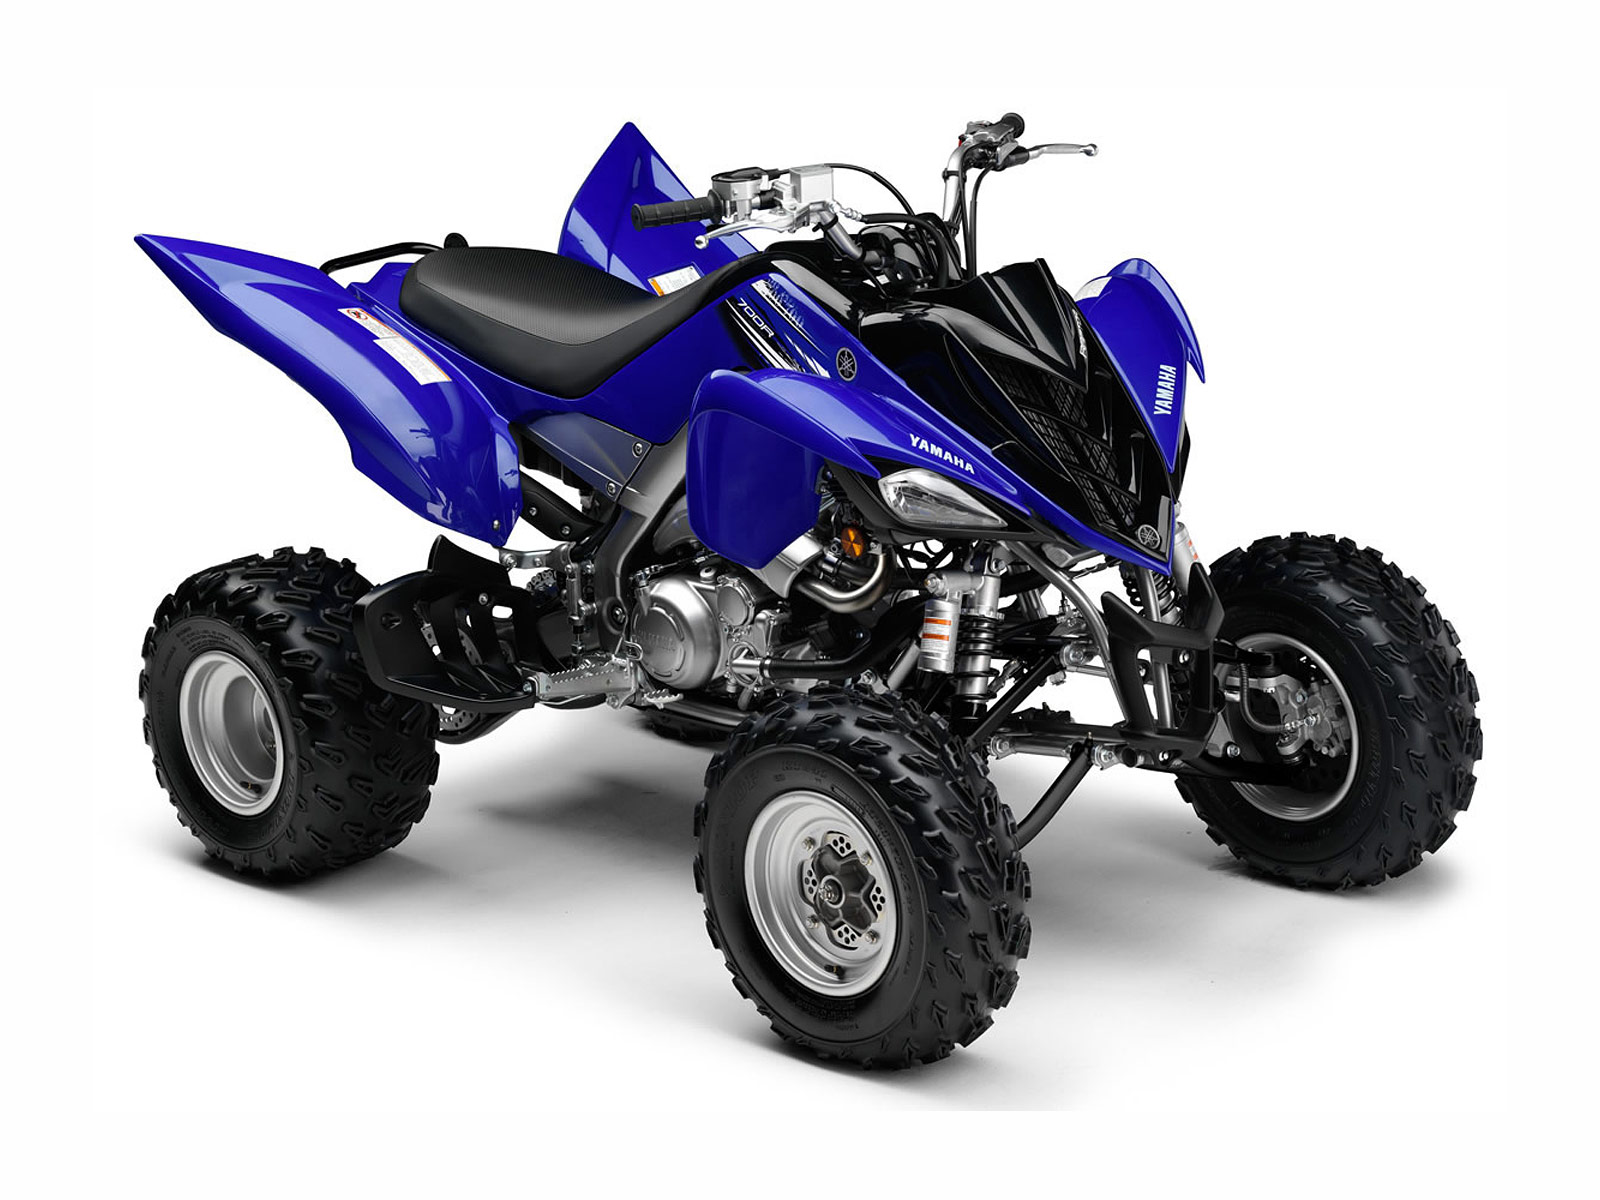 2012 YAMAHA Raptor 700R ATV pictures specifications 1600x1200